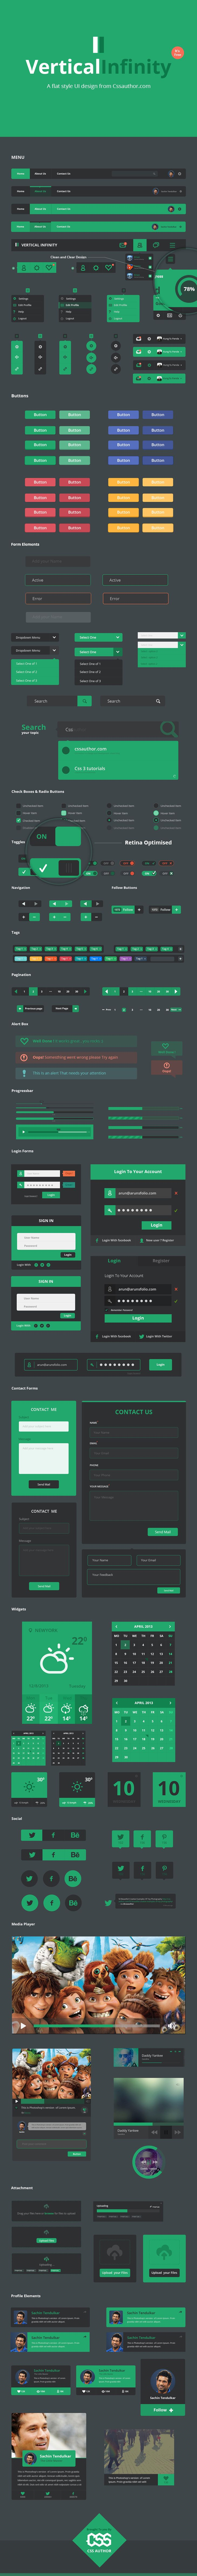 Vertical Infinity - A Mega Flat Style UI Kit - Freebies - Fribly #grafica #web